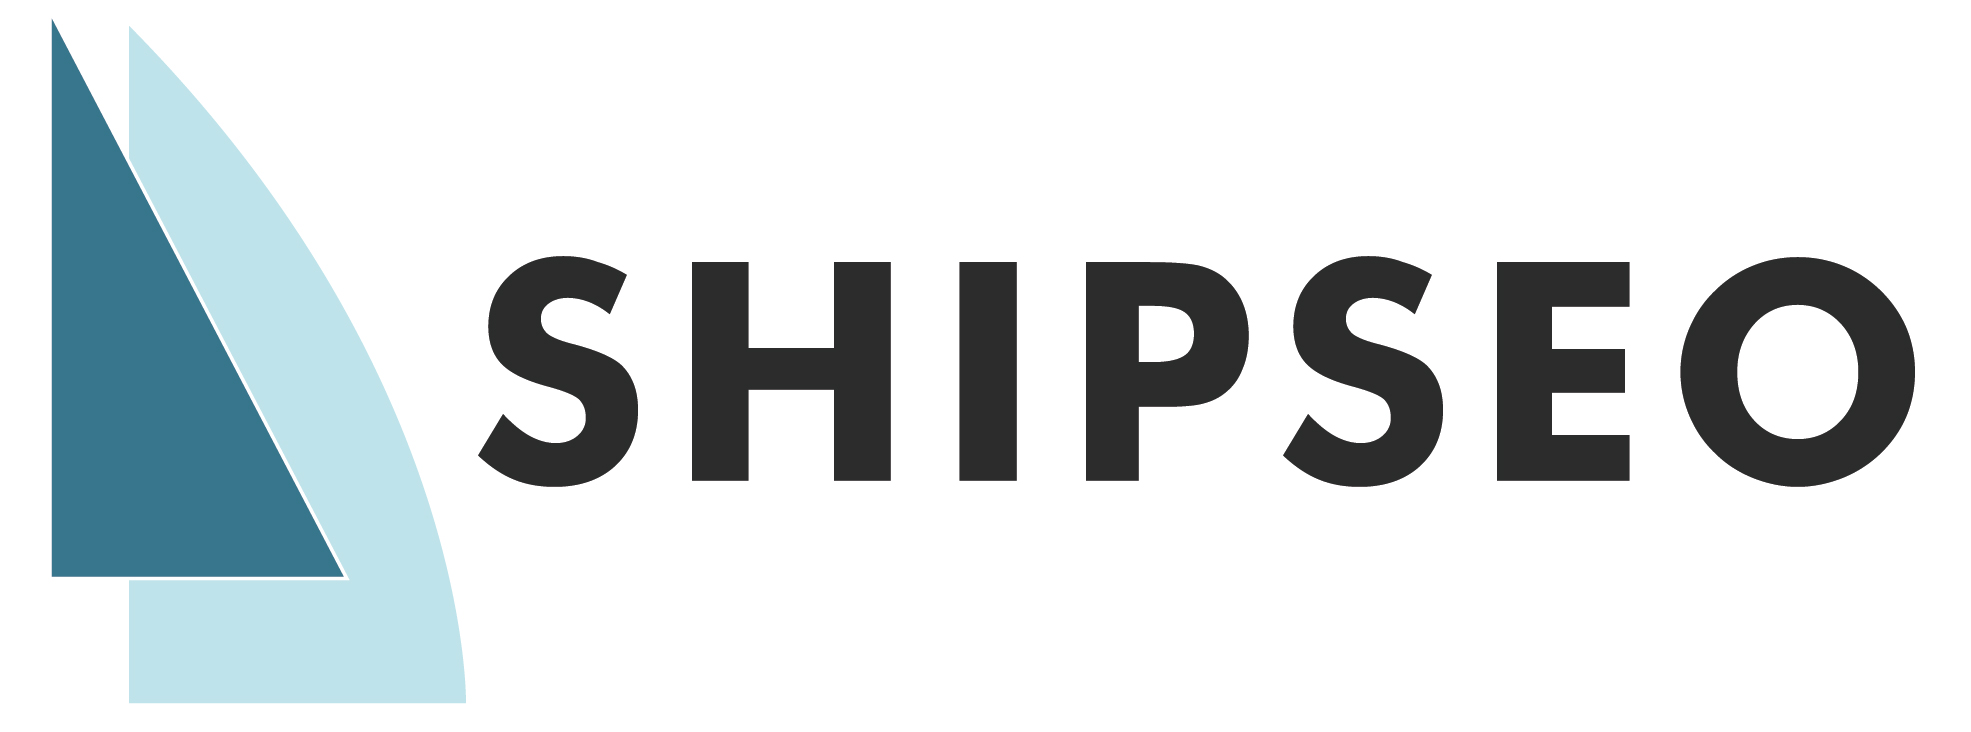 SHIPSEO